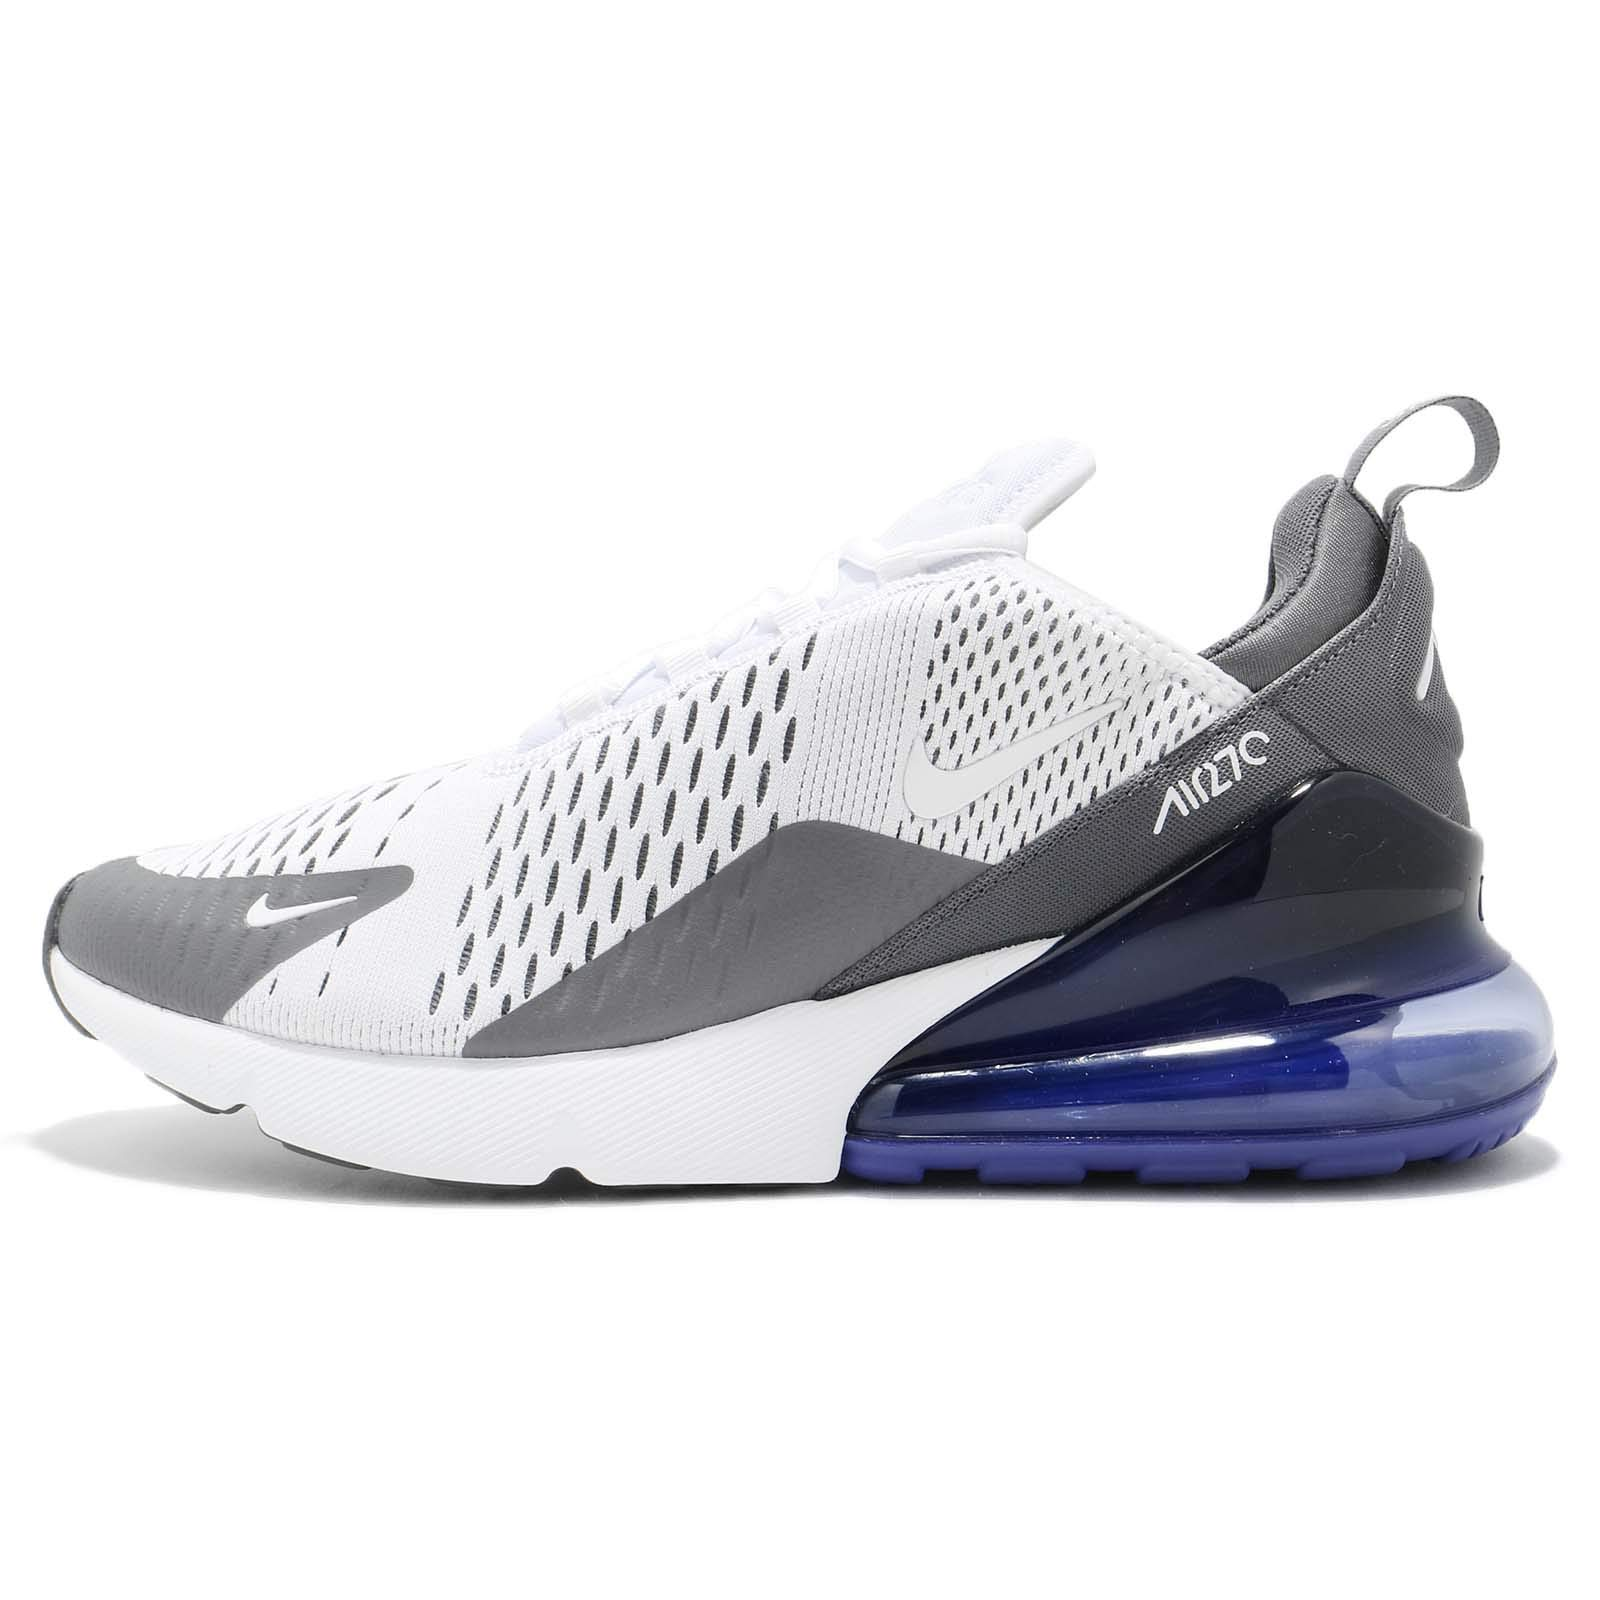 Details about Nike Air Max 270 28 cm 10 Men 10US